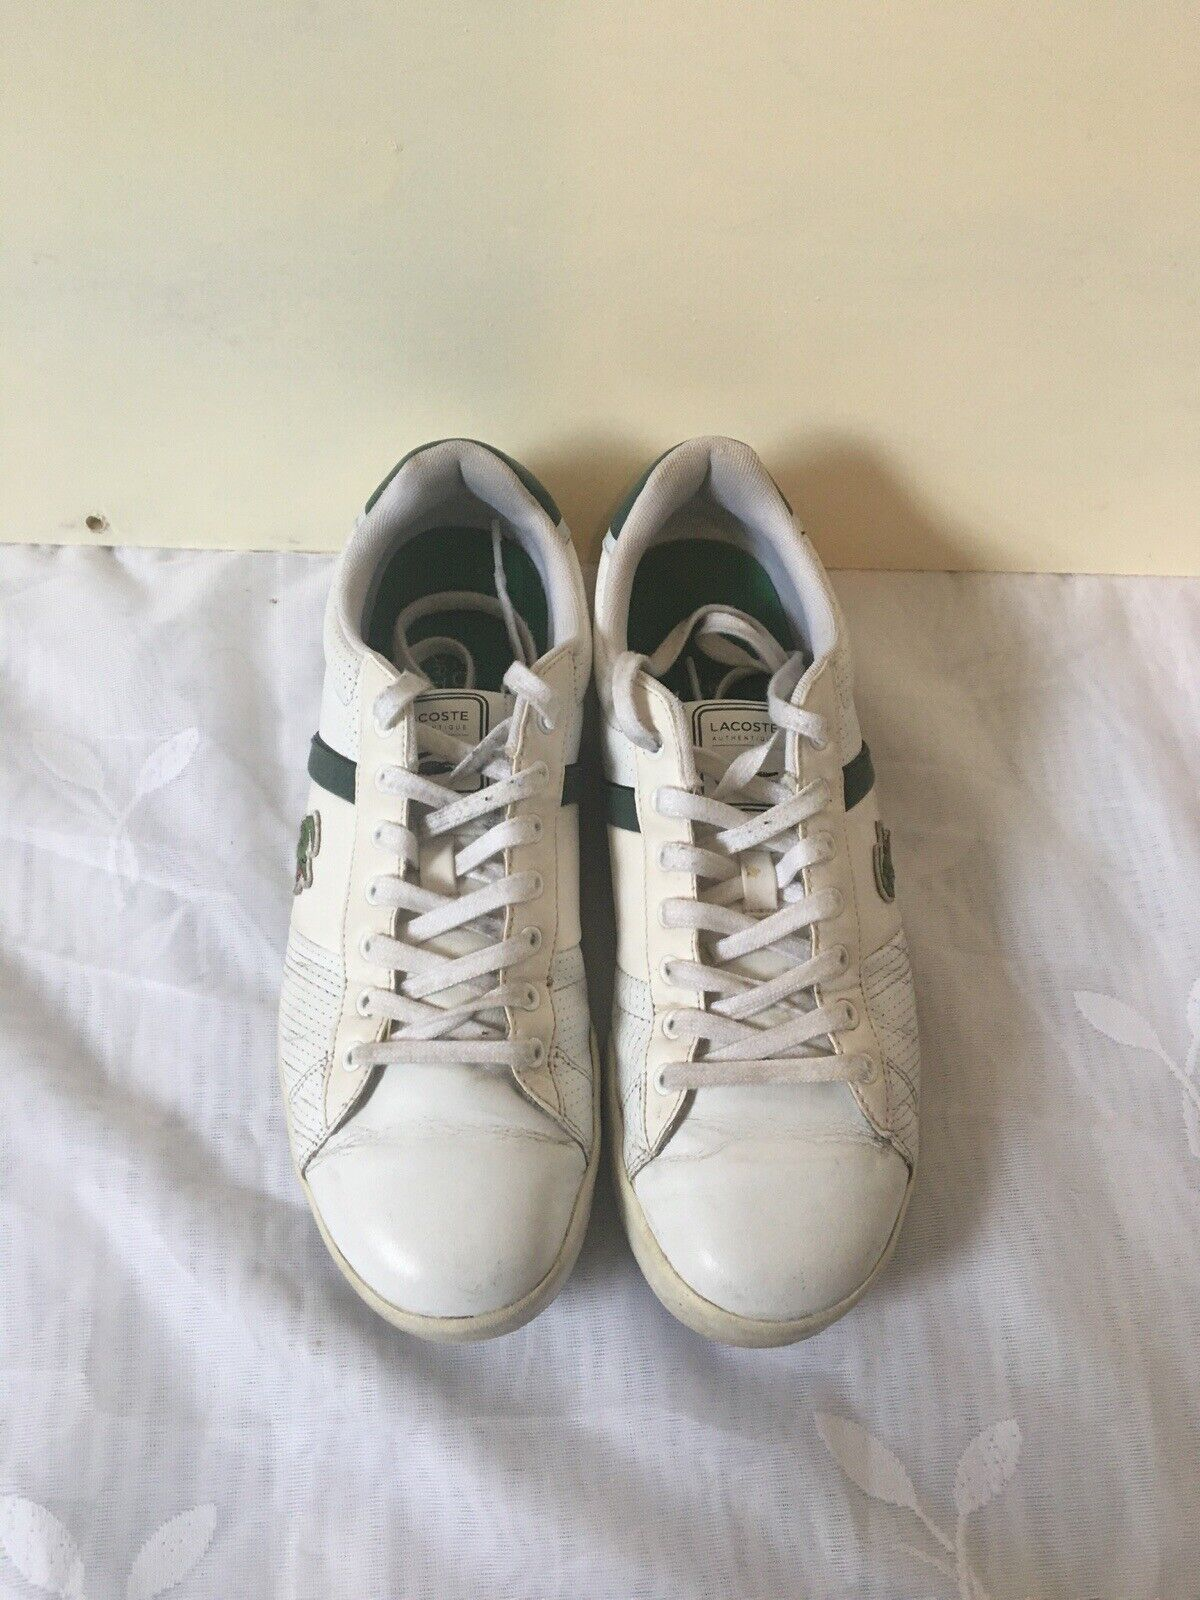 Mens Lacoste Leather trainers size 8 White. Used